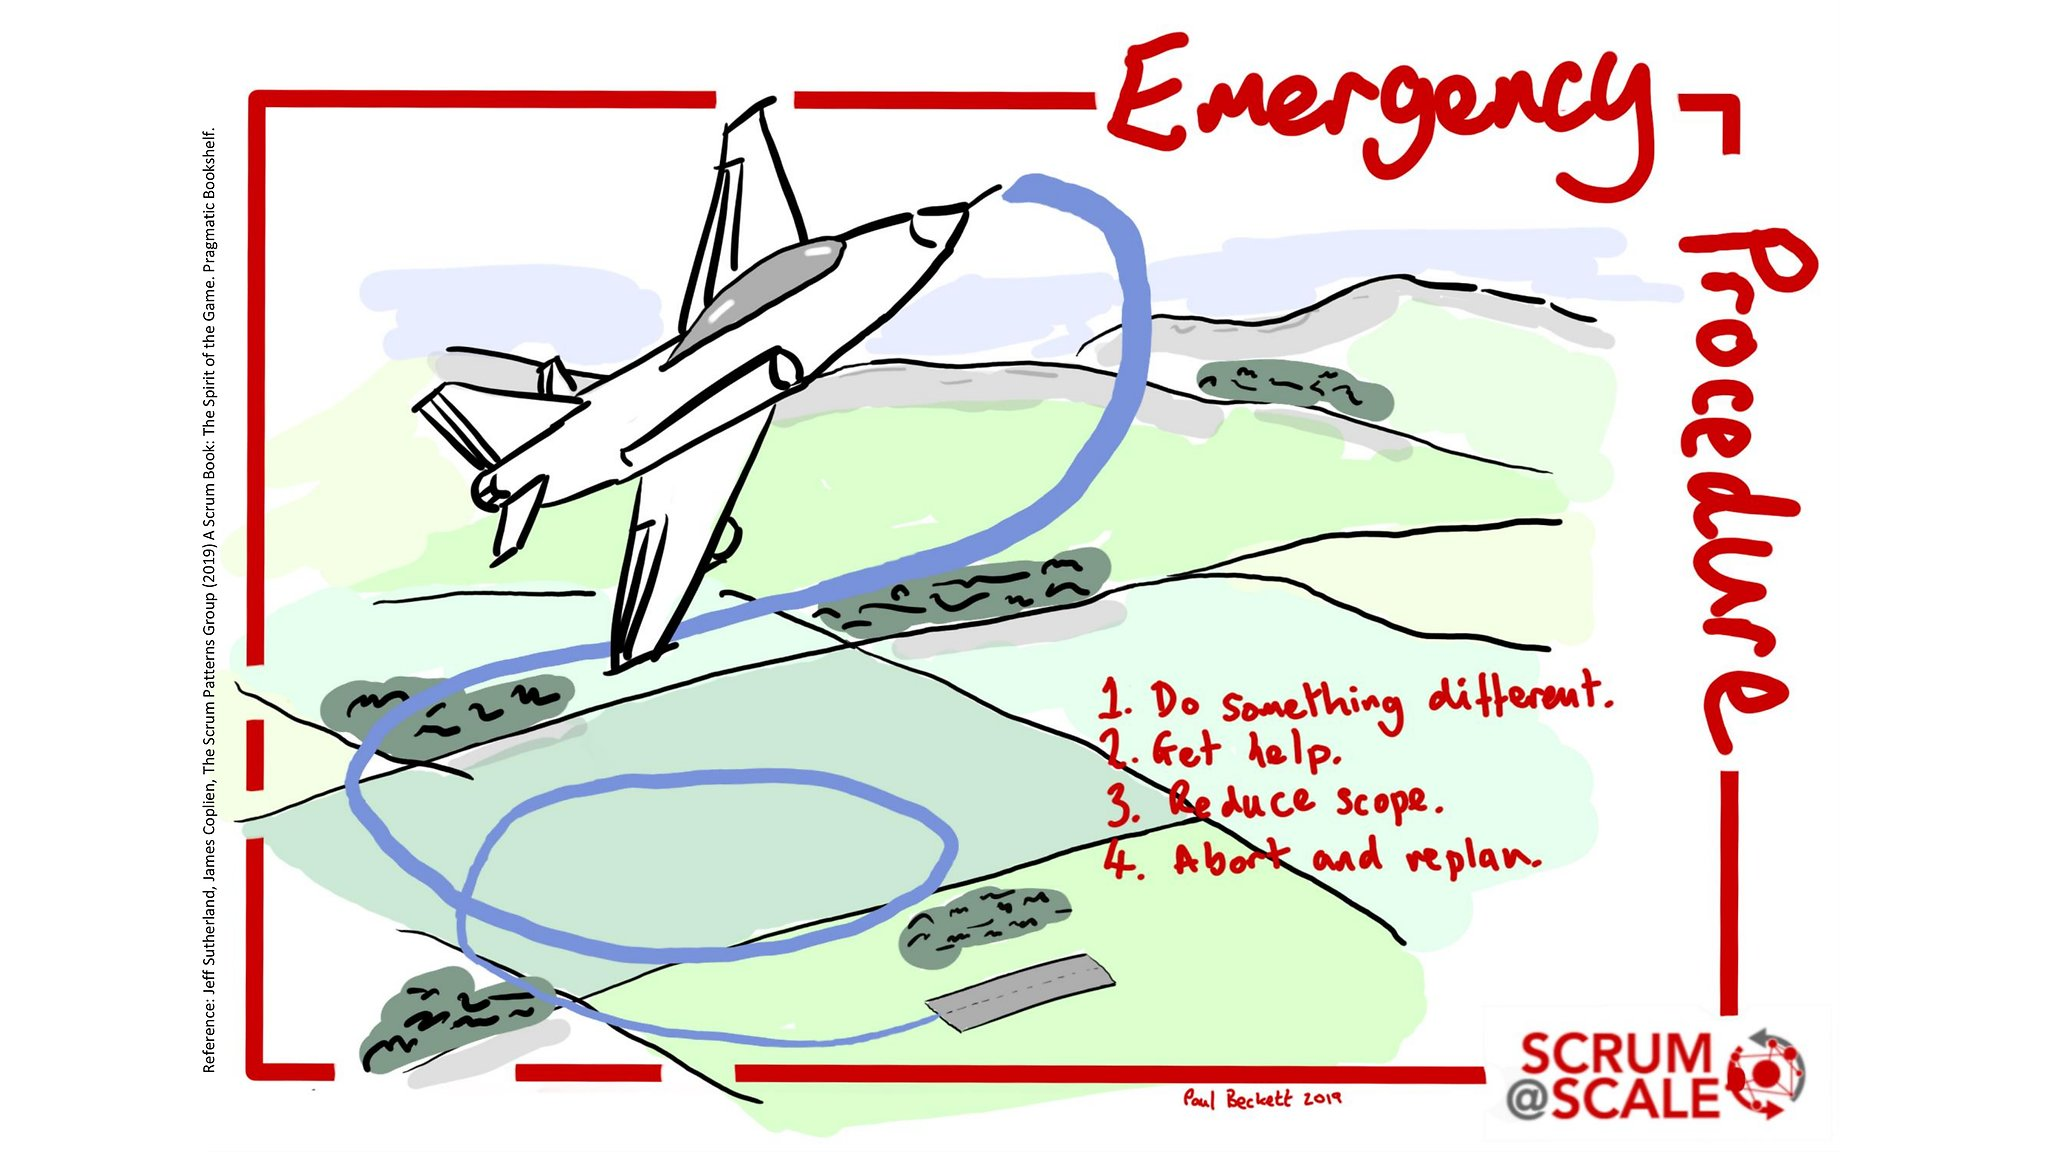 Emergency Procedure - Recommended Scrum Patterns - Scrum@Scale